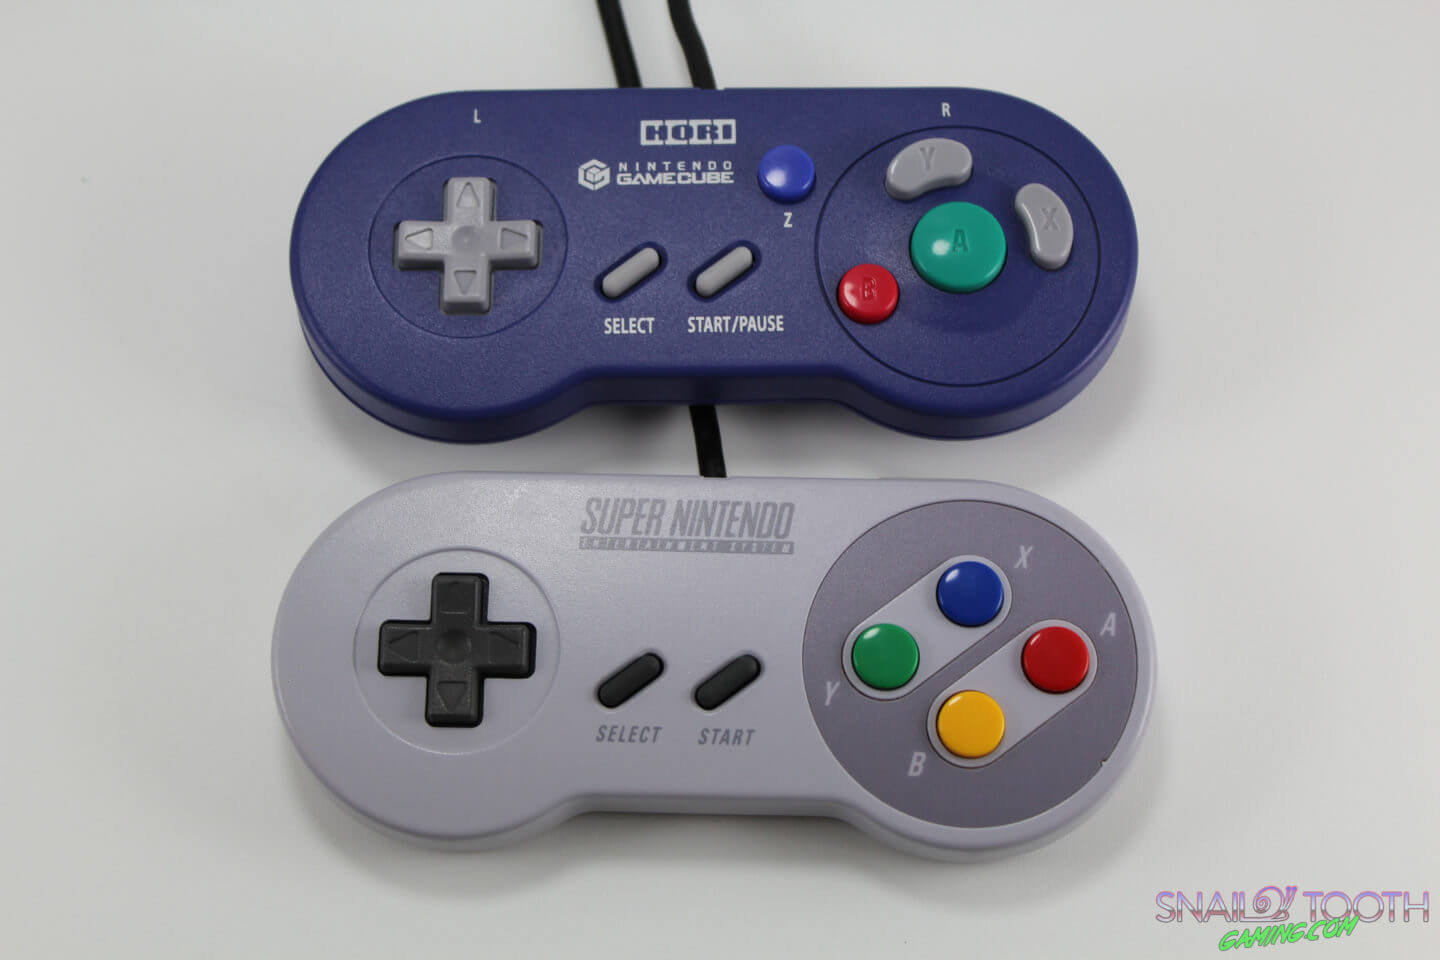 The Hori Digital Controller | Snail Tooth Gaming